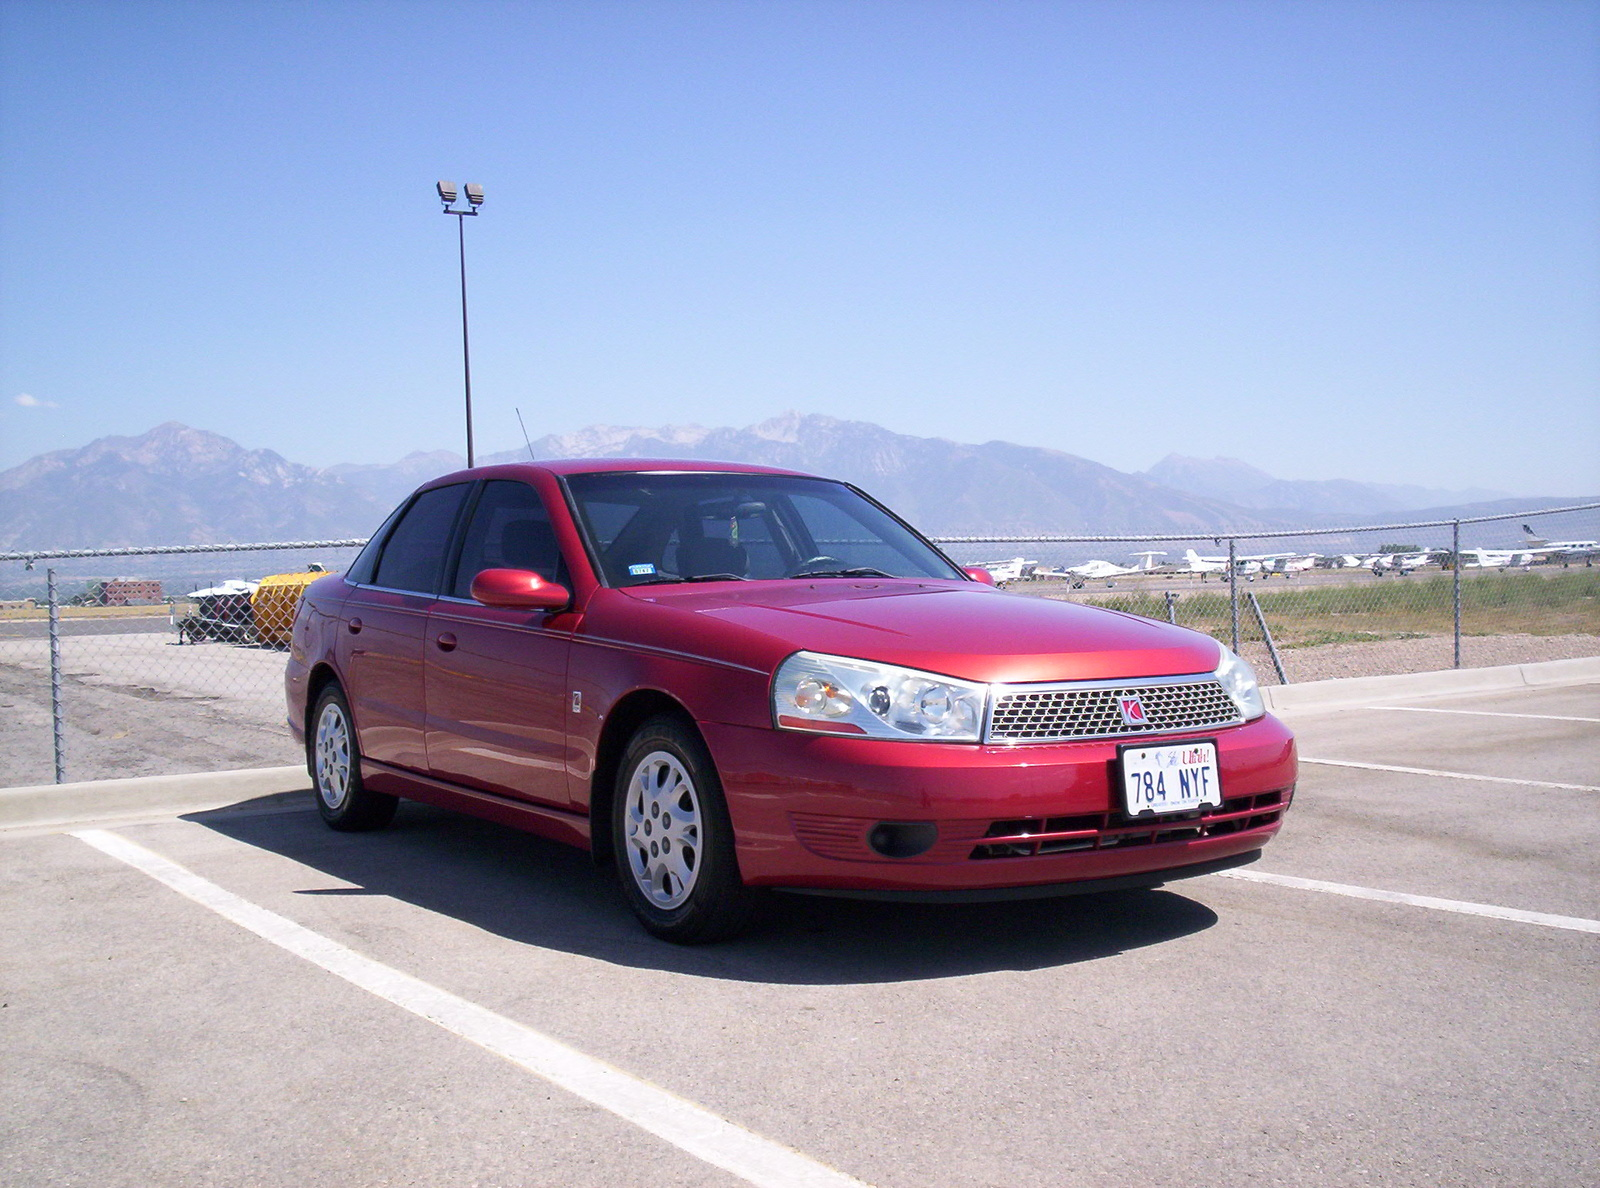 What's your take on the 2003 Saturn L-Series?